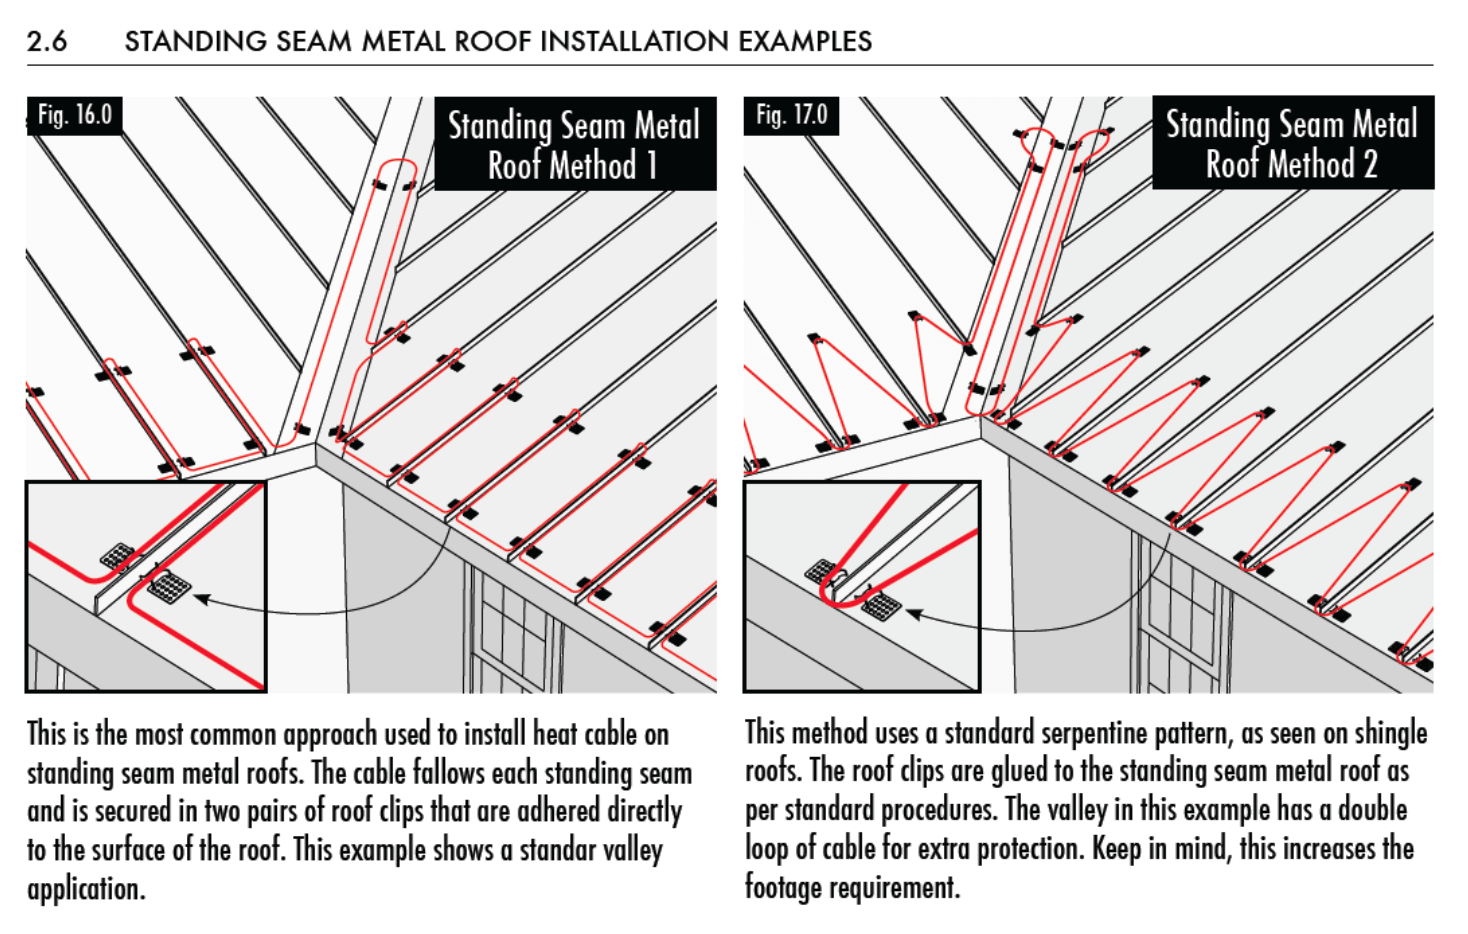 Heat Tape on a Standing Seam Roof